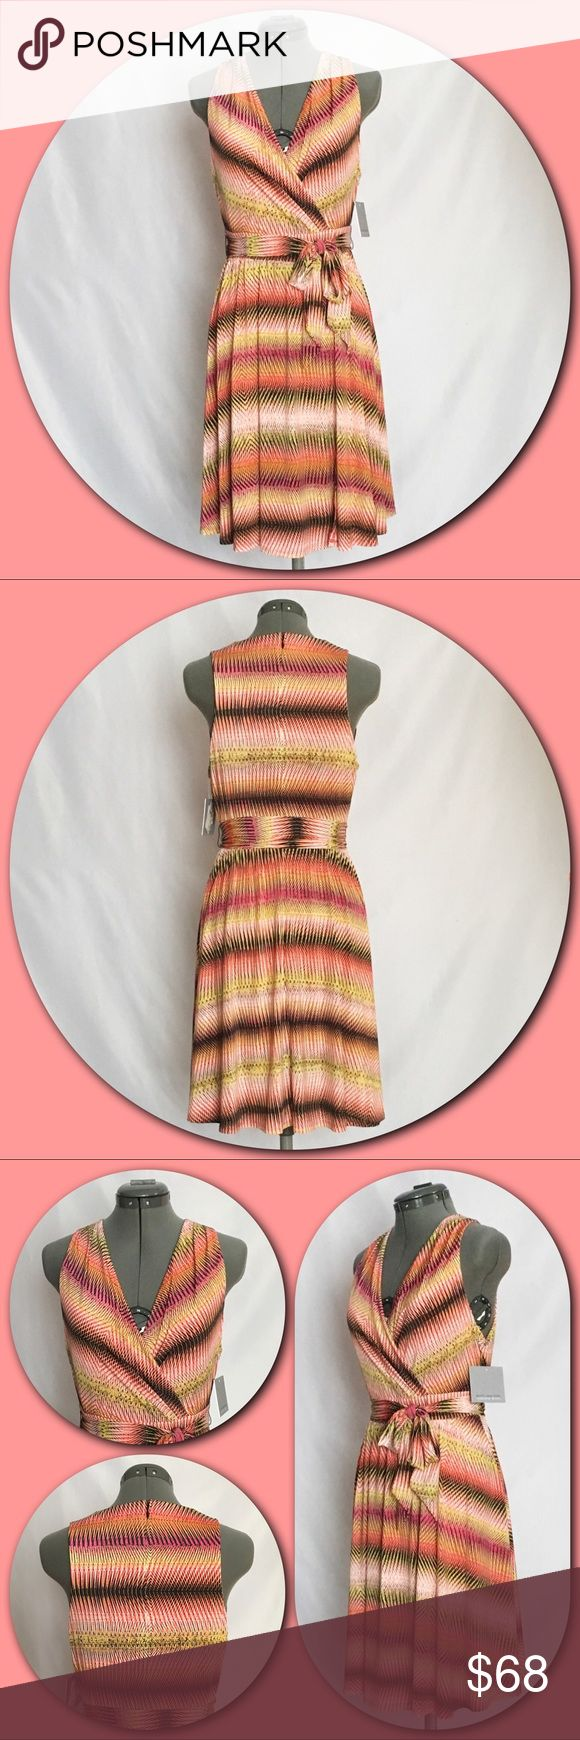 """Marc New York - Andrew Marc 💕Faux Wrap Dress💕 Marc New York - Andrew Marc 💕Vibrant Faux Wrap Dress. Multi-colored cross over V-neck with pleats at the shoulders and waist. Self tie at the waist with a split wrap around skirt. Hidden back zipper, fully lined. Lining fabric only has a small hole/run by the neck label which does not go through to the dress fabric. Picture #4. Approximate measurements taken lying flat with no stretch. Bust - 17"""" armpit to armpit. Waist - 15"""" side to side…"""